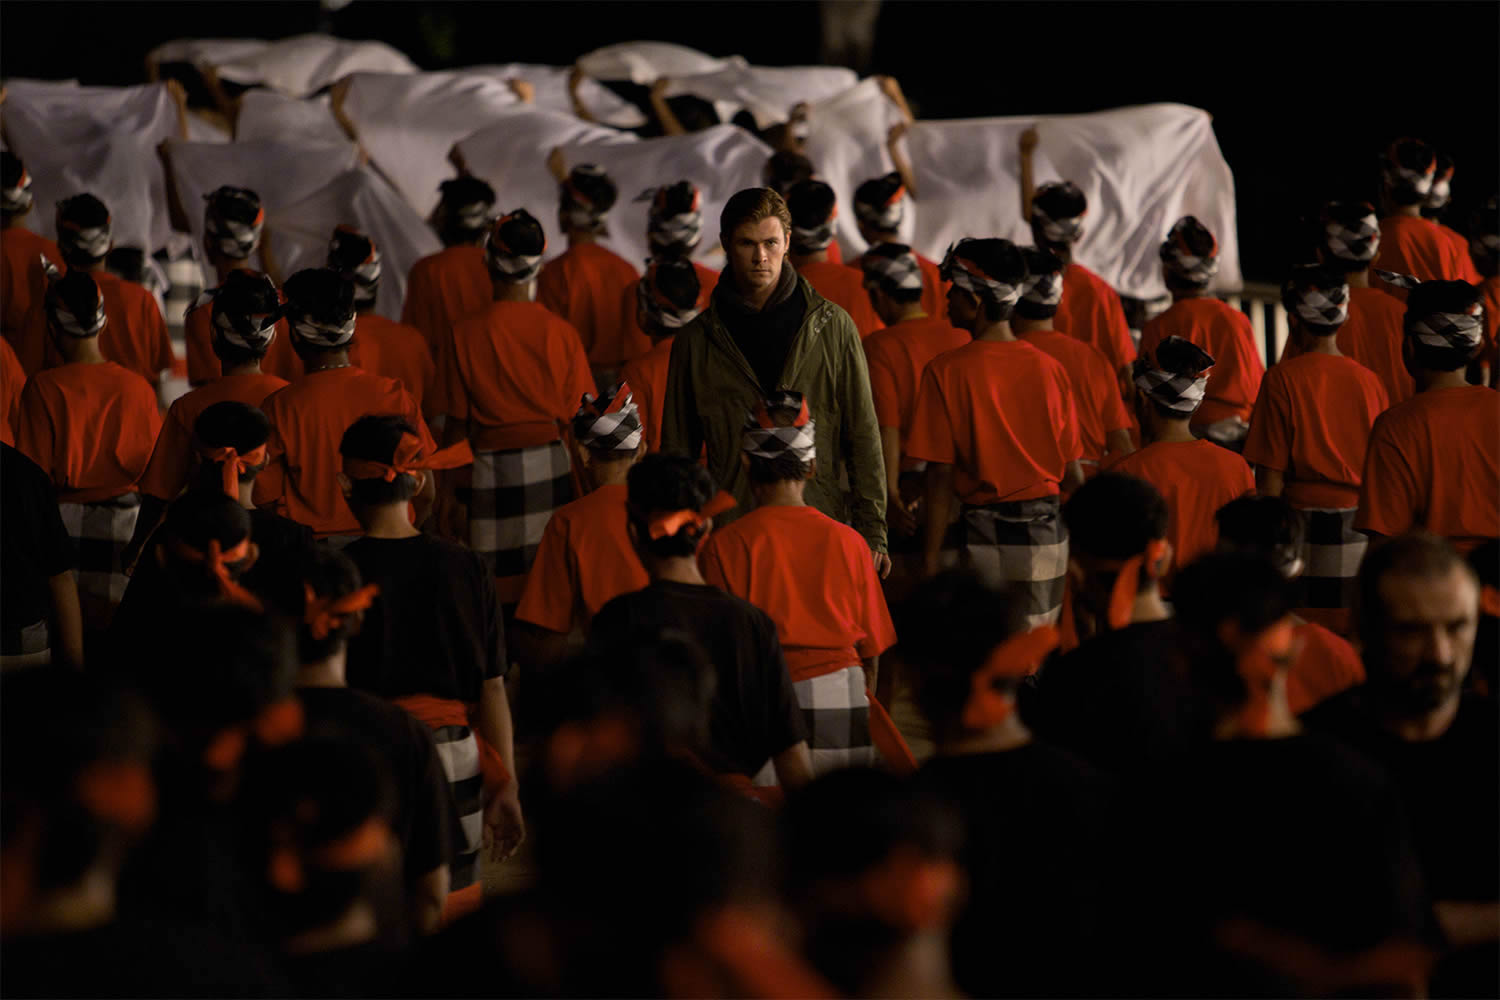 man in crowd, blackhat movie